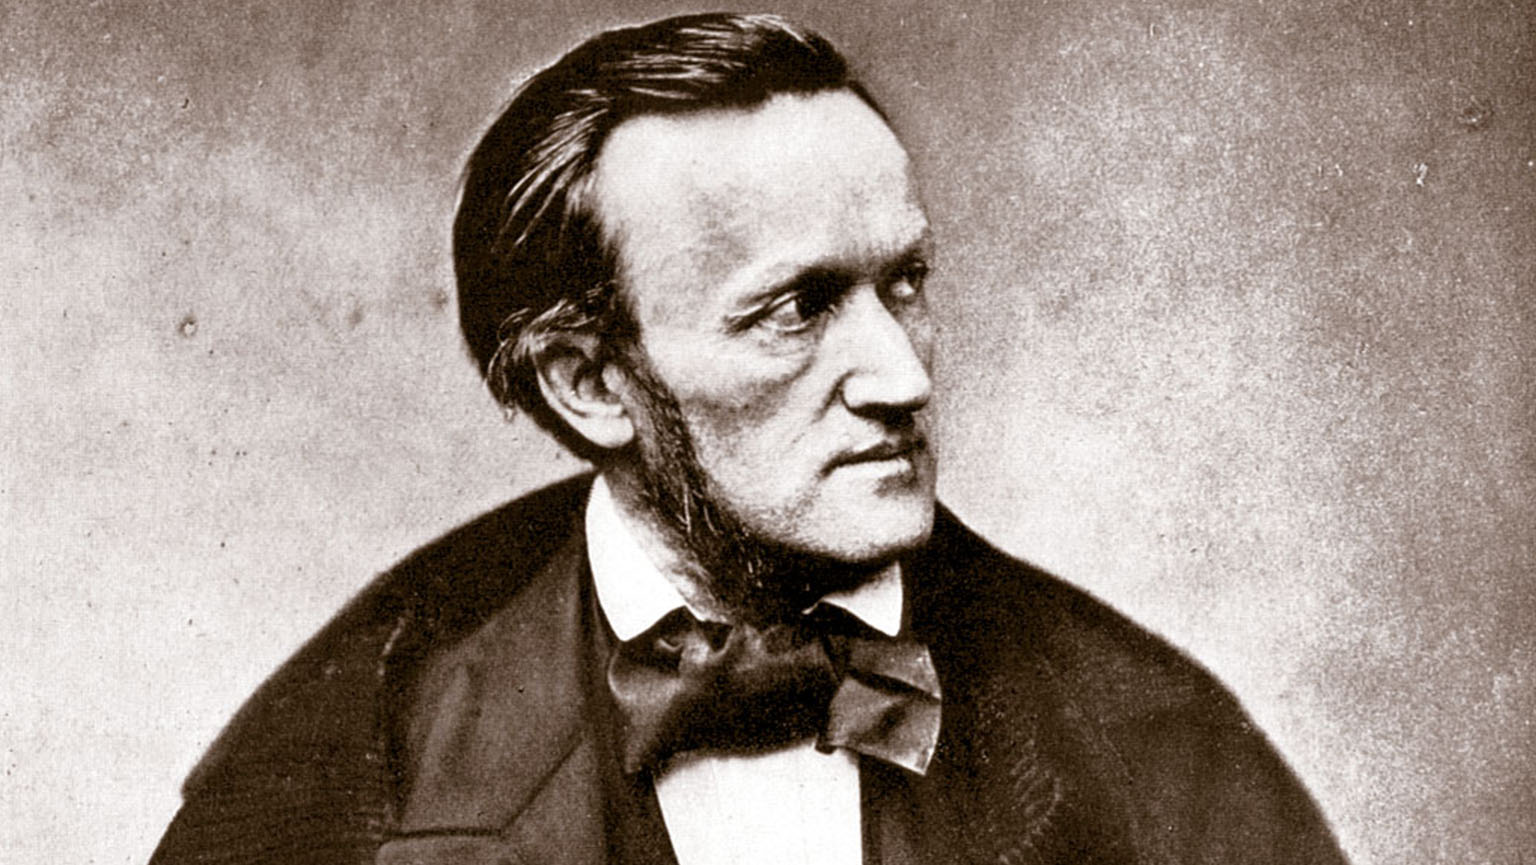 Richard Wagner and Tristan und Isolde, I